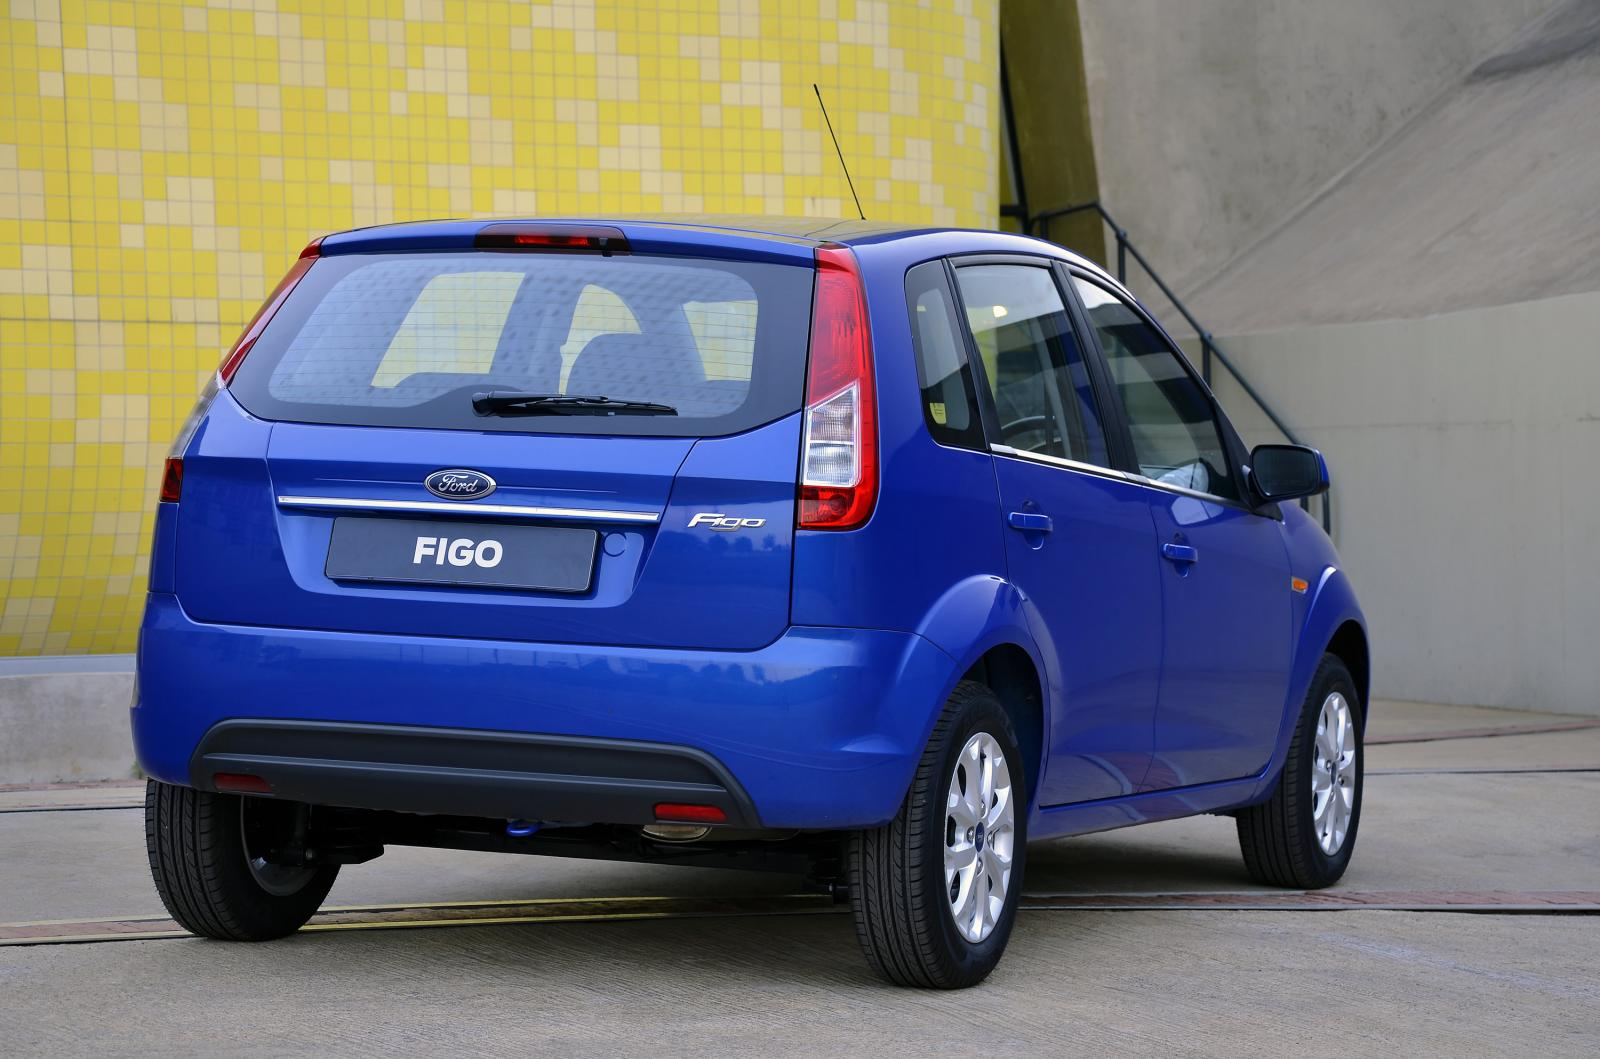 Ford Fiesta Mpg >> Ford Figo Gets Updated for 2013 - autoevolution